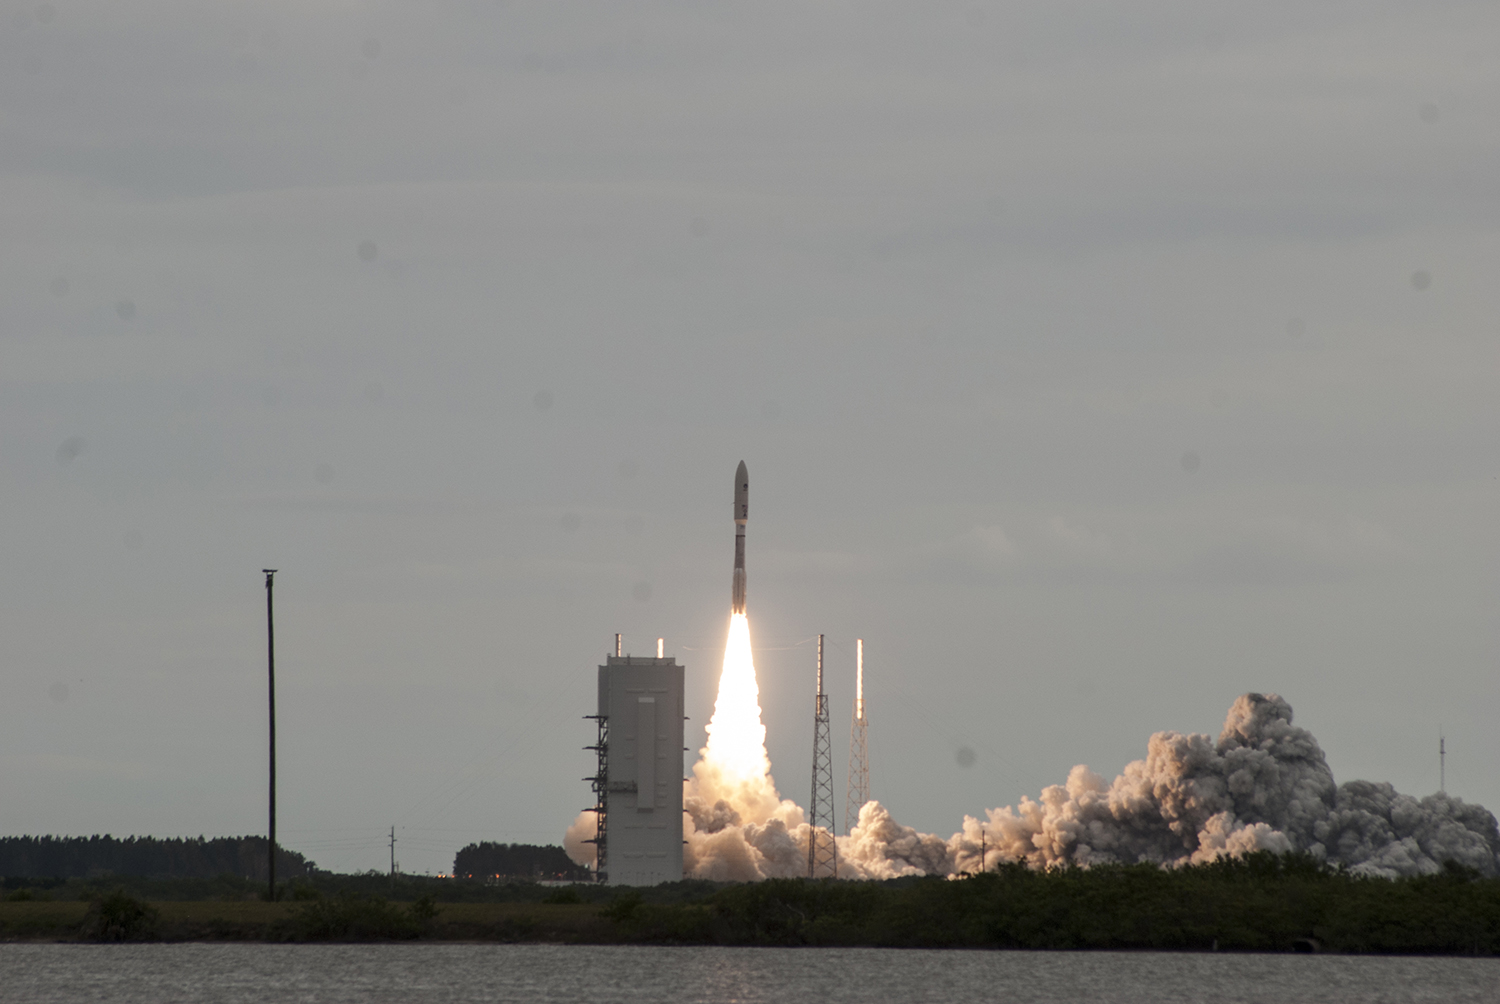 Atlas V roars off the launch pad carrying the MUOS-2 spacecraft for the U.S. Navy. Credit: Val Phillips / Zero-G News